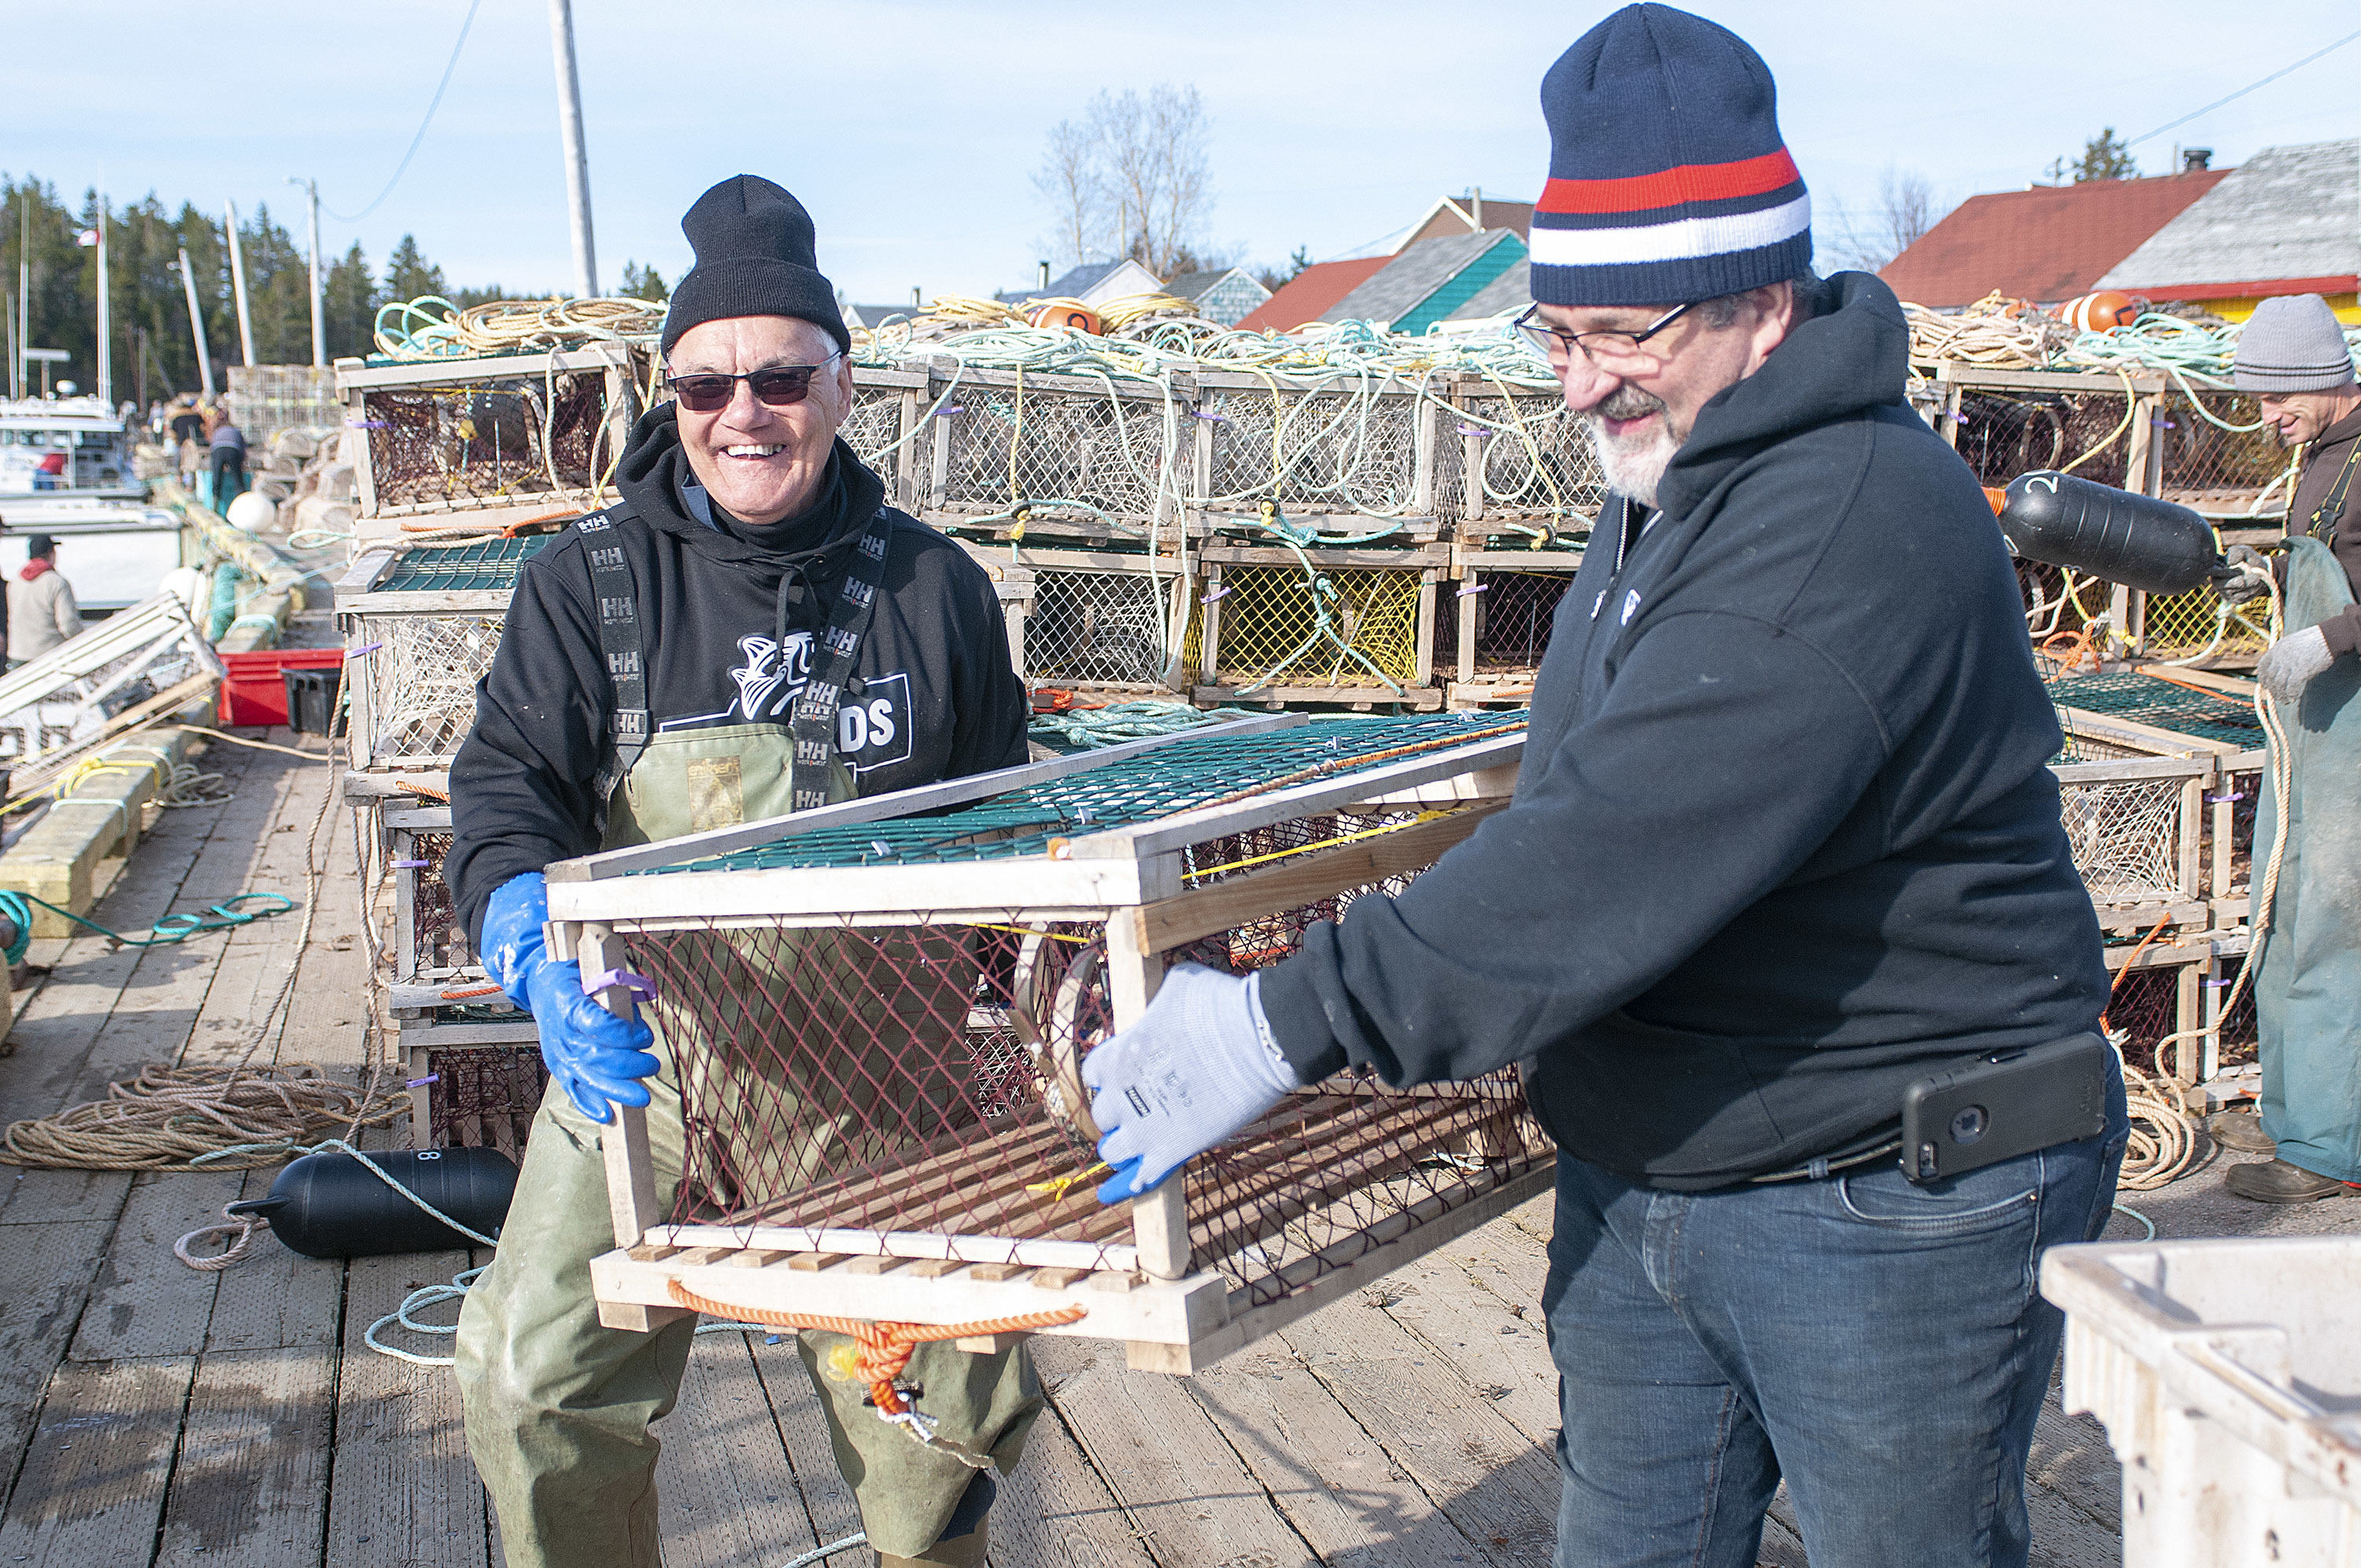 Captain Alfred Gallant, left, of Mister In-Between and Larry Court, load traps onto the boat after setting their first load earlier in the morning. Each boat is allowed approximately 300 traps and they split those between two runs. (Brian McInnis)